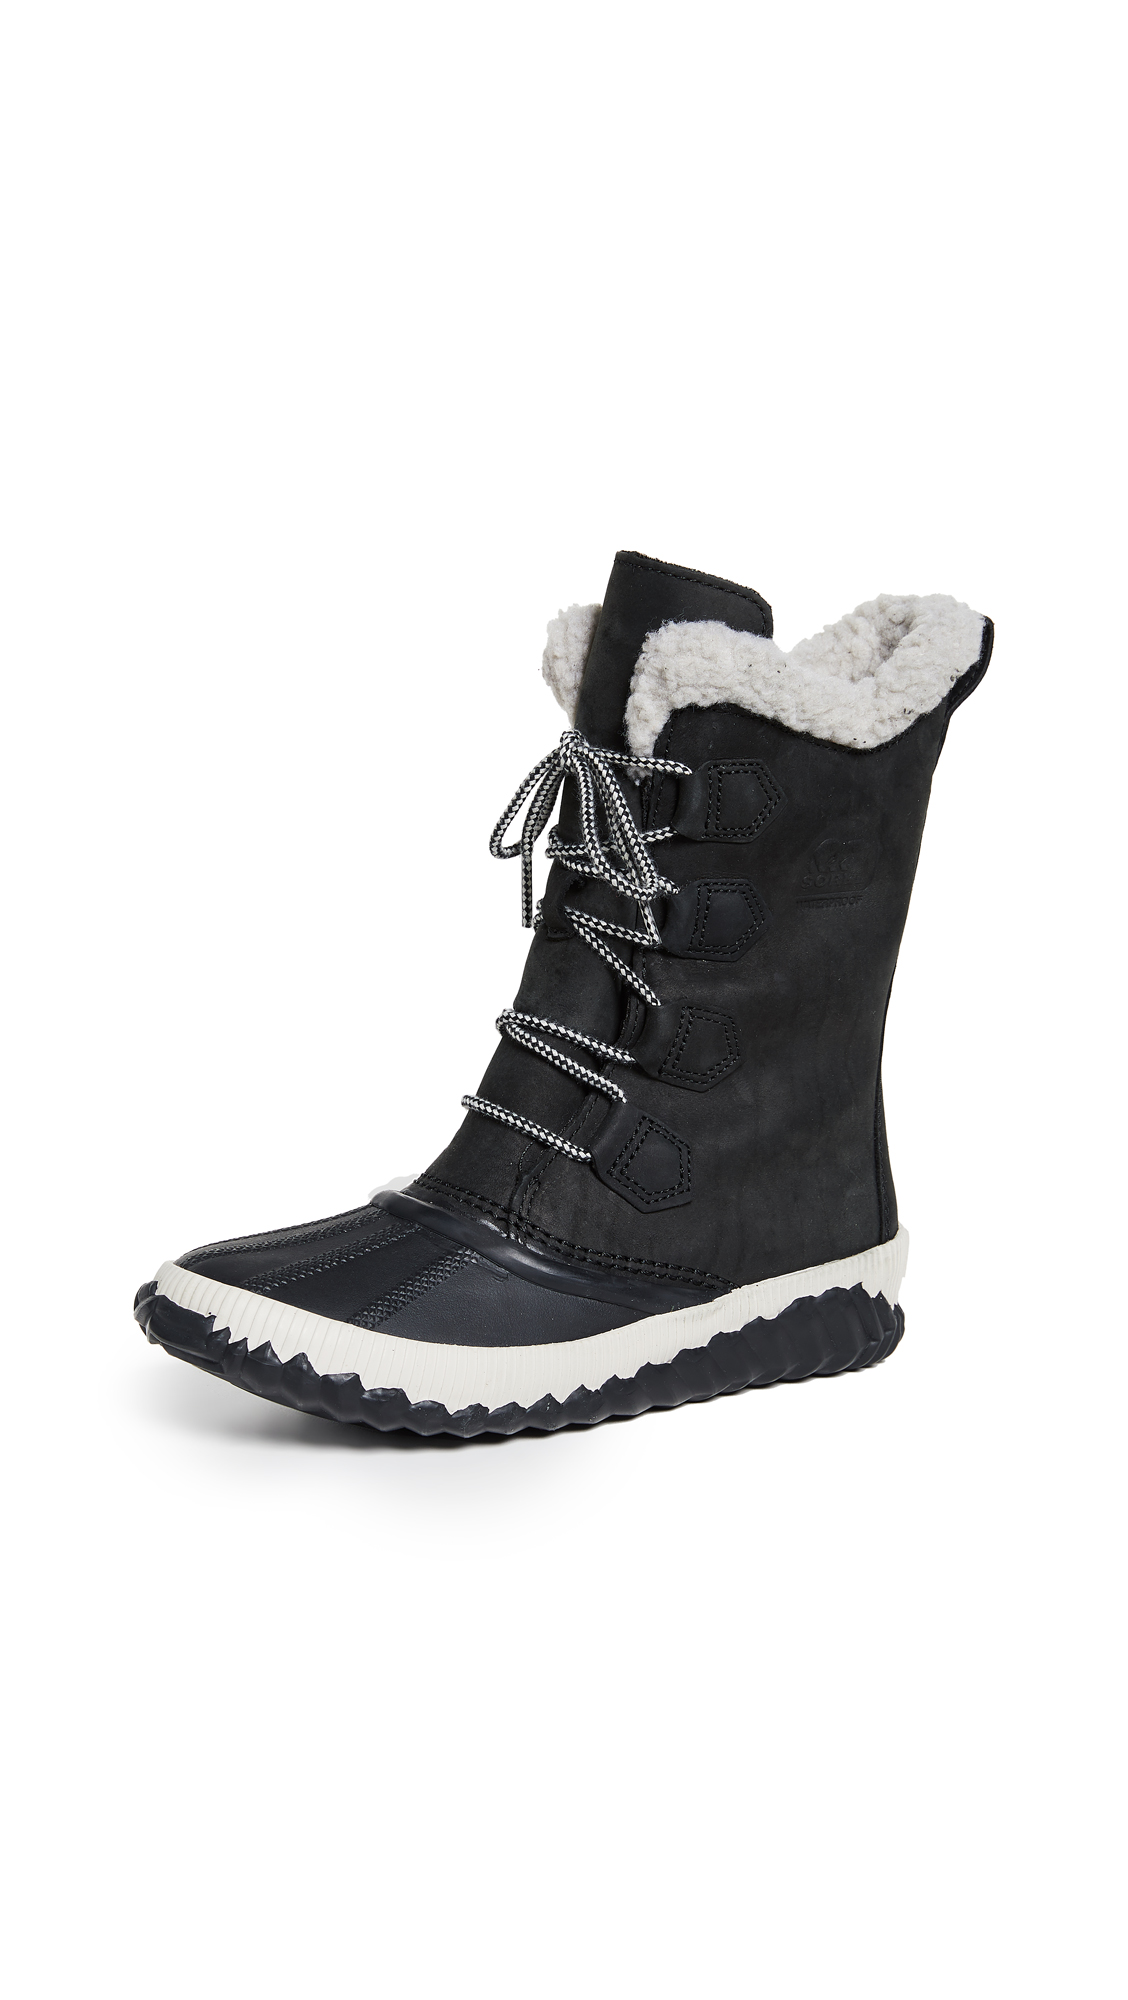 Women'S Out N About Plus Waterproof Cold-Weather Boots in Black